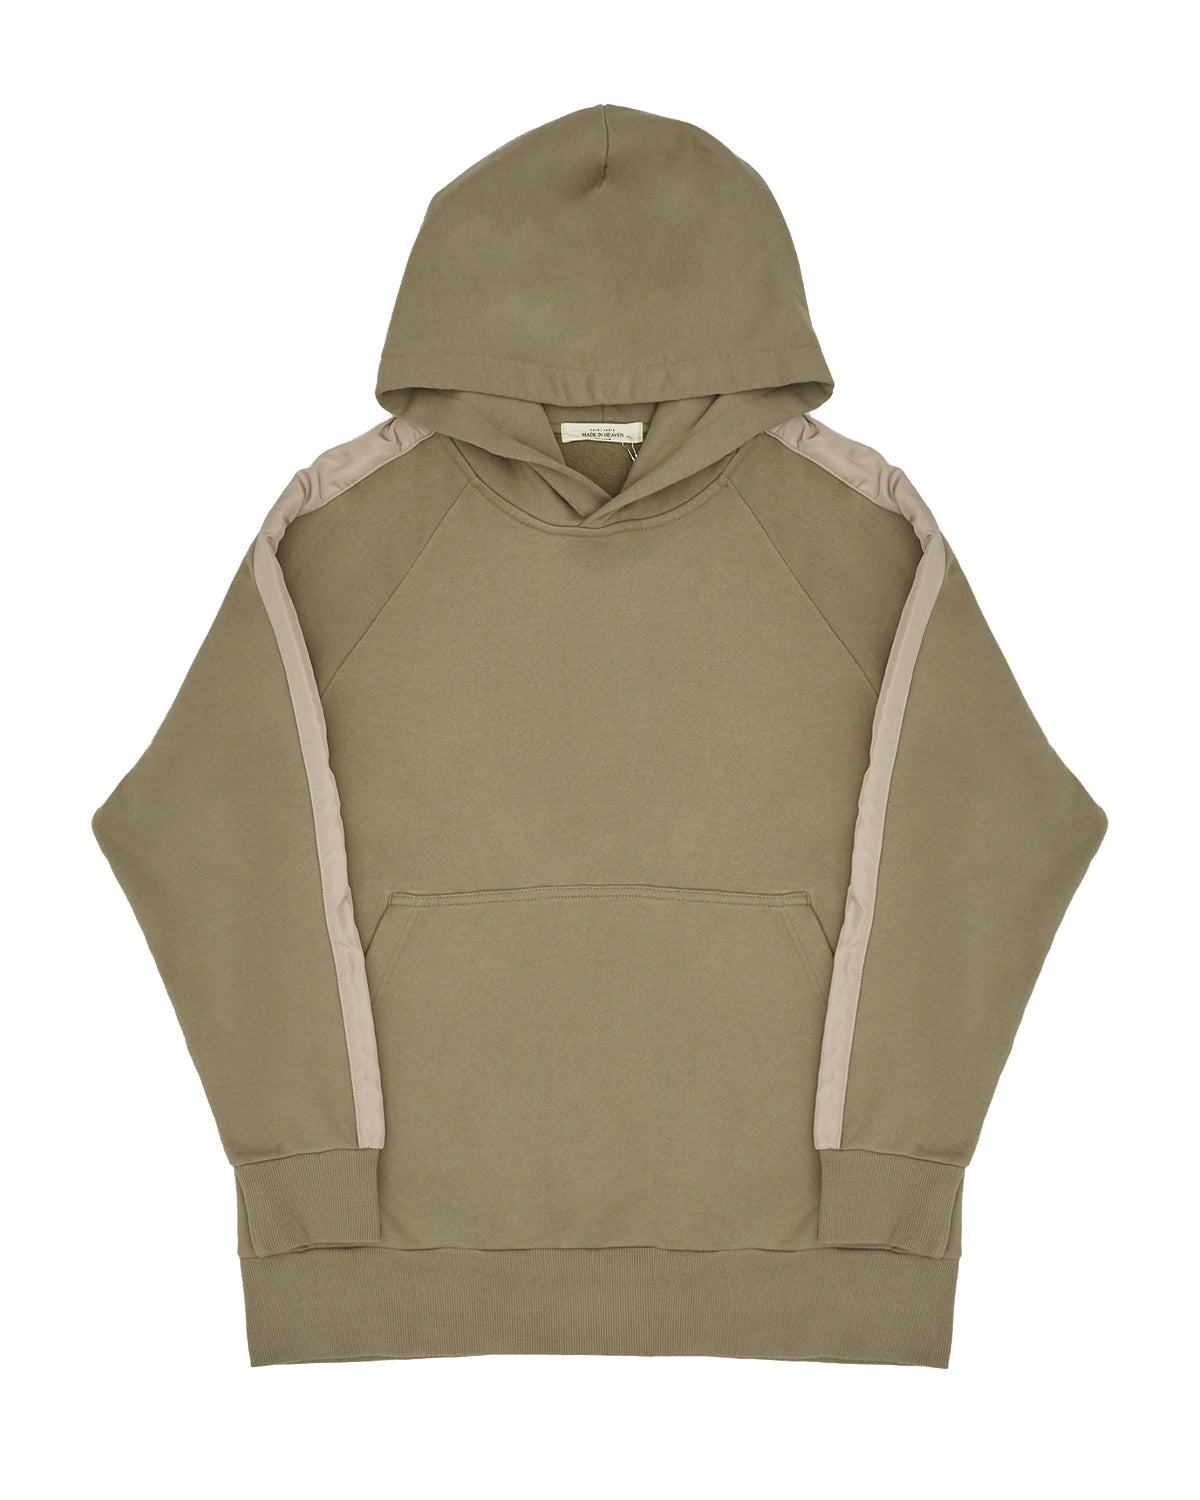 Desert Storm Hooded Sweatshirt Seneca Rock